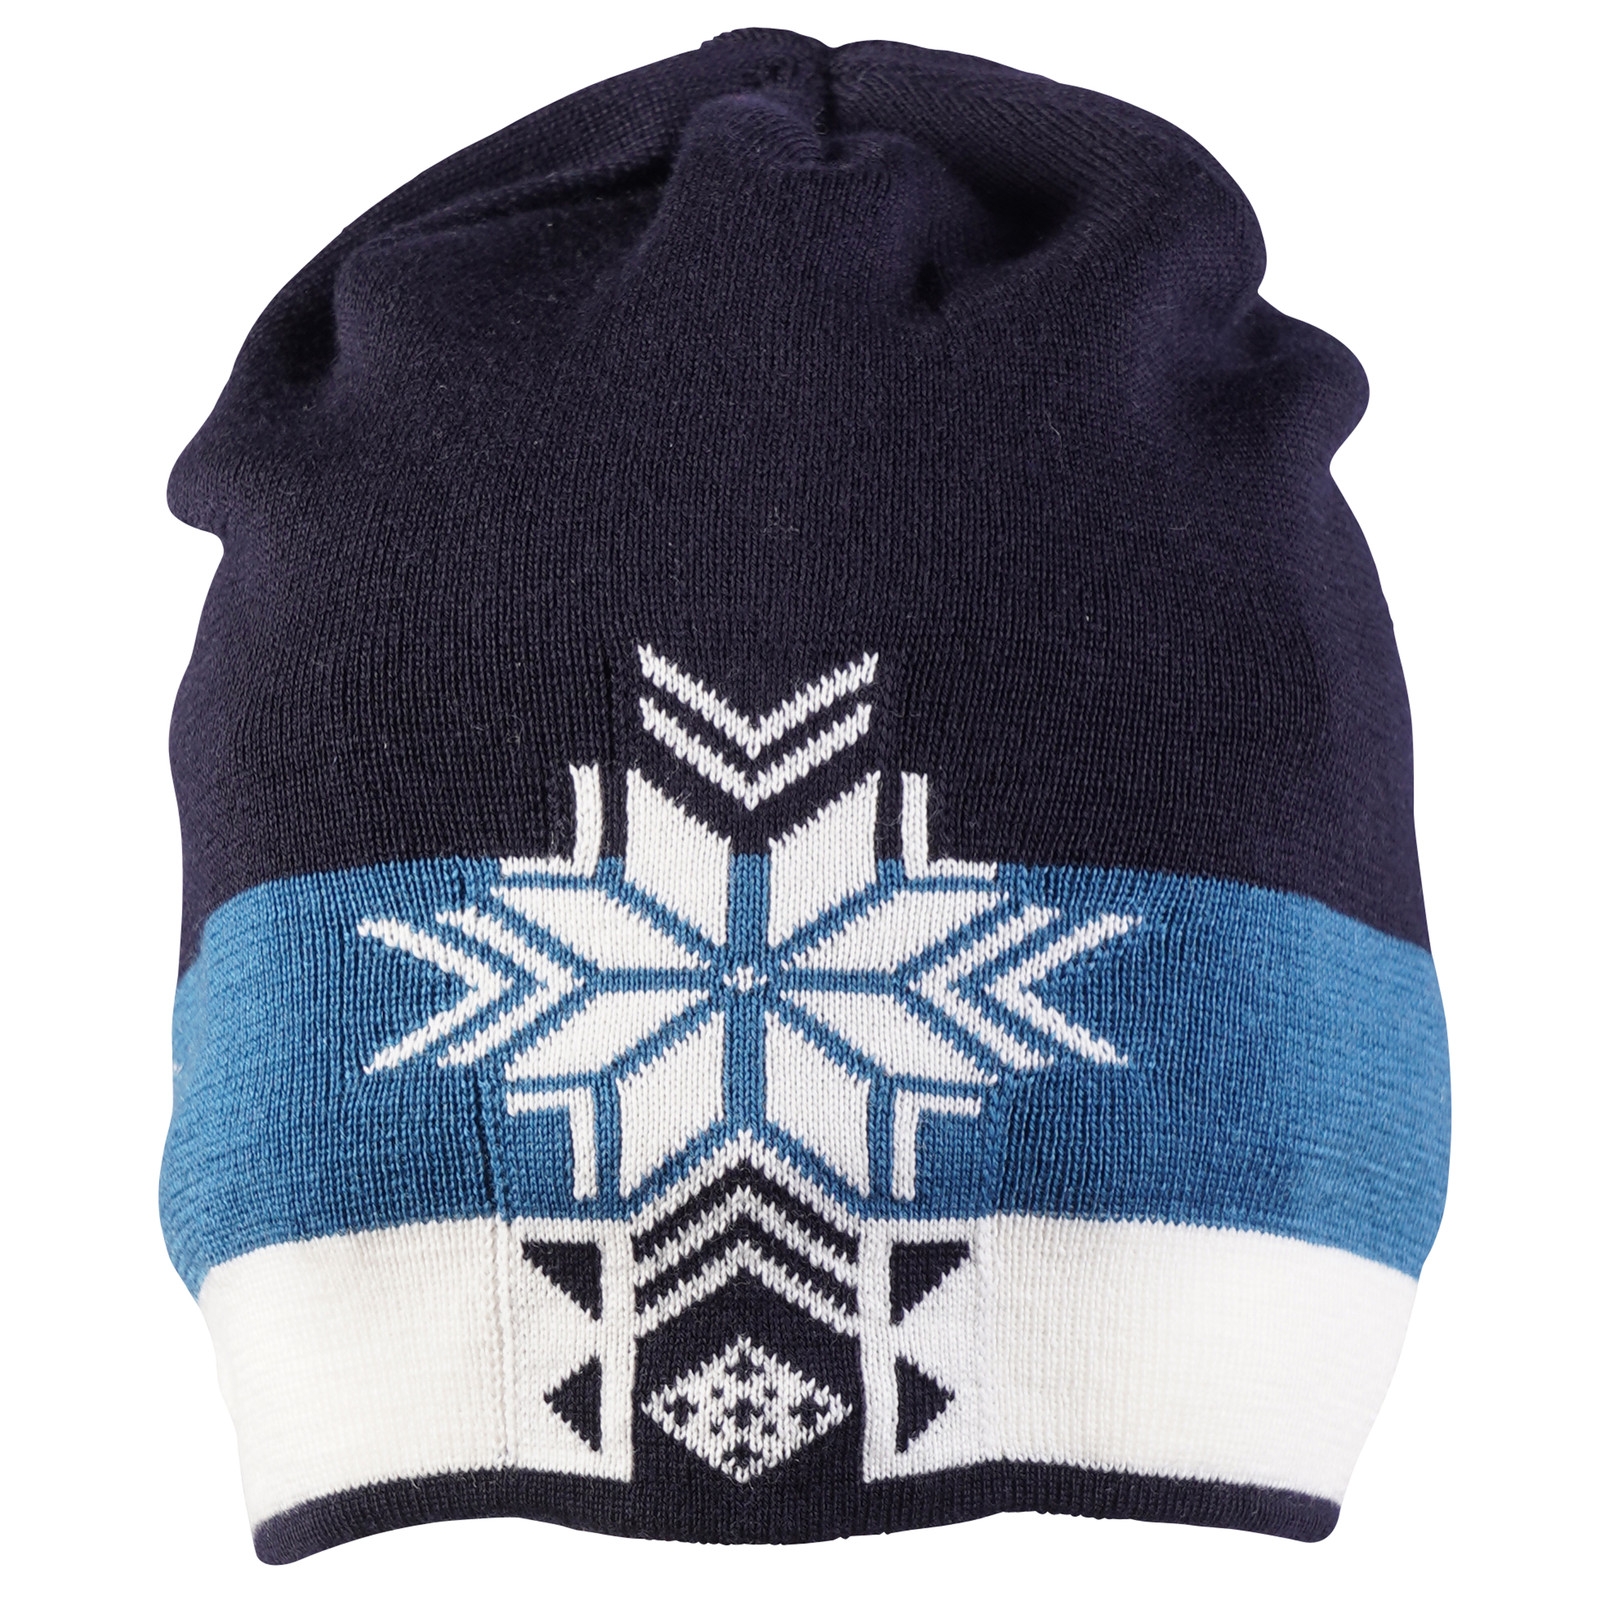 Front view of Dale of Norway Geilolia Hat - Navy/Arctic Blue/Off White, 48261-C